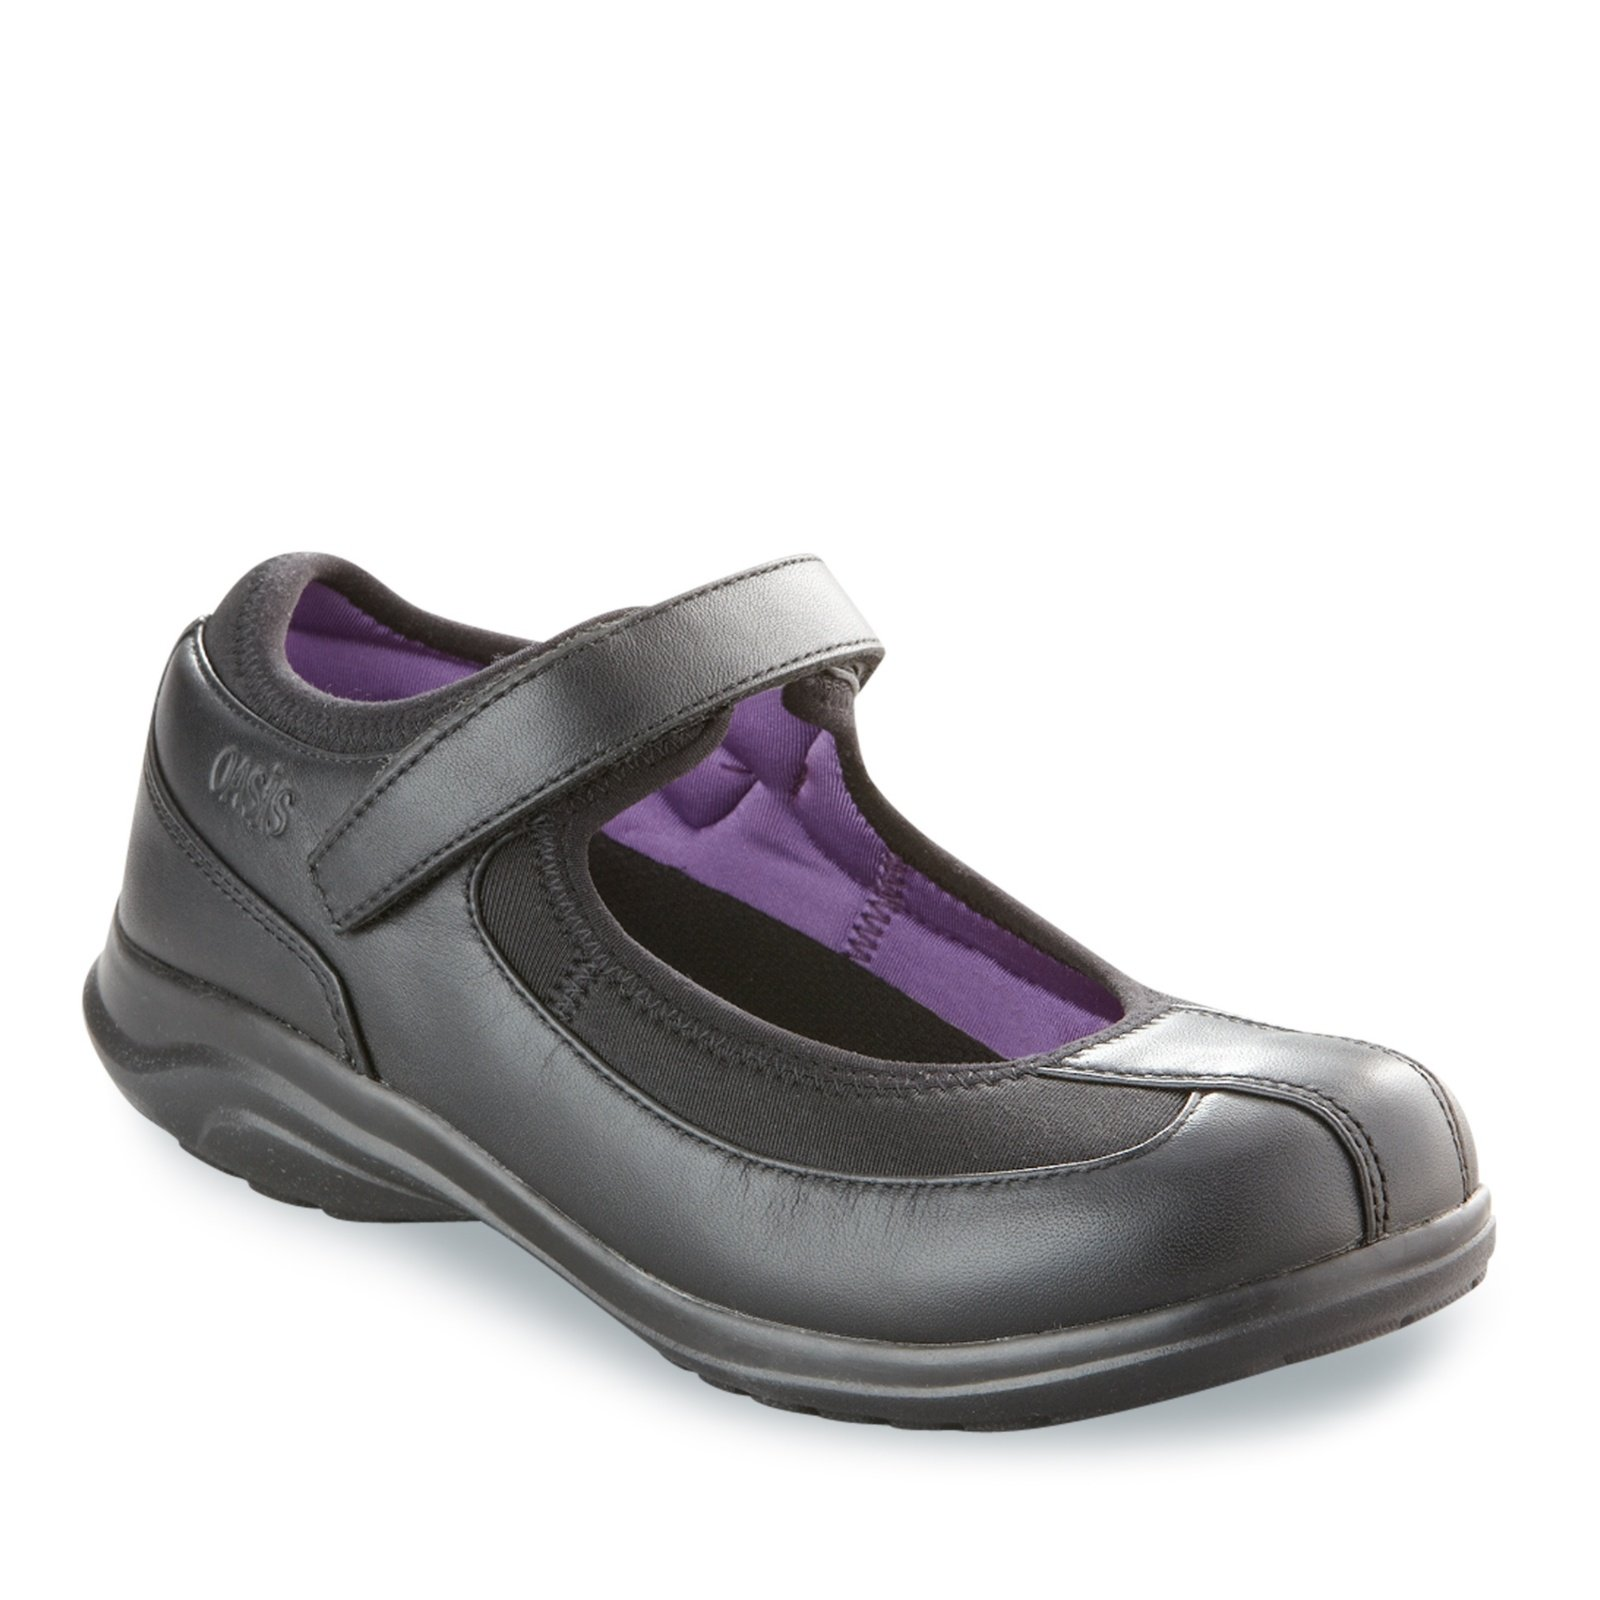 Oasis Women's Lona Mary Jane Shoes, Black/Purple, 9 M/C-D by Oasis